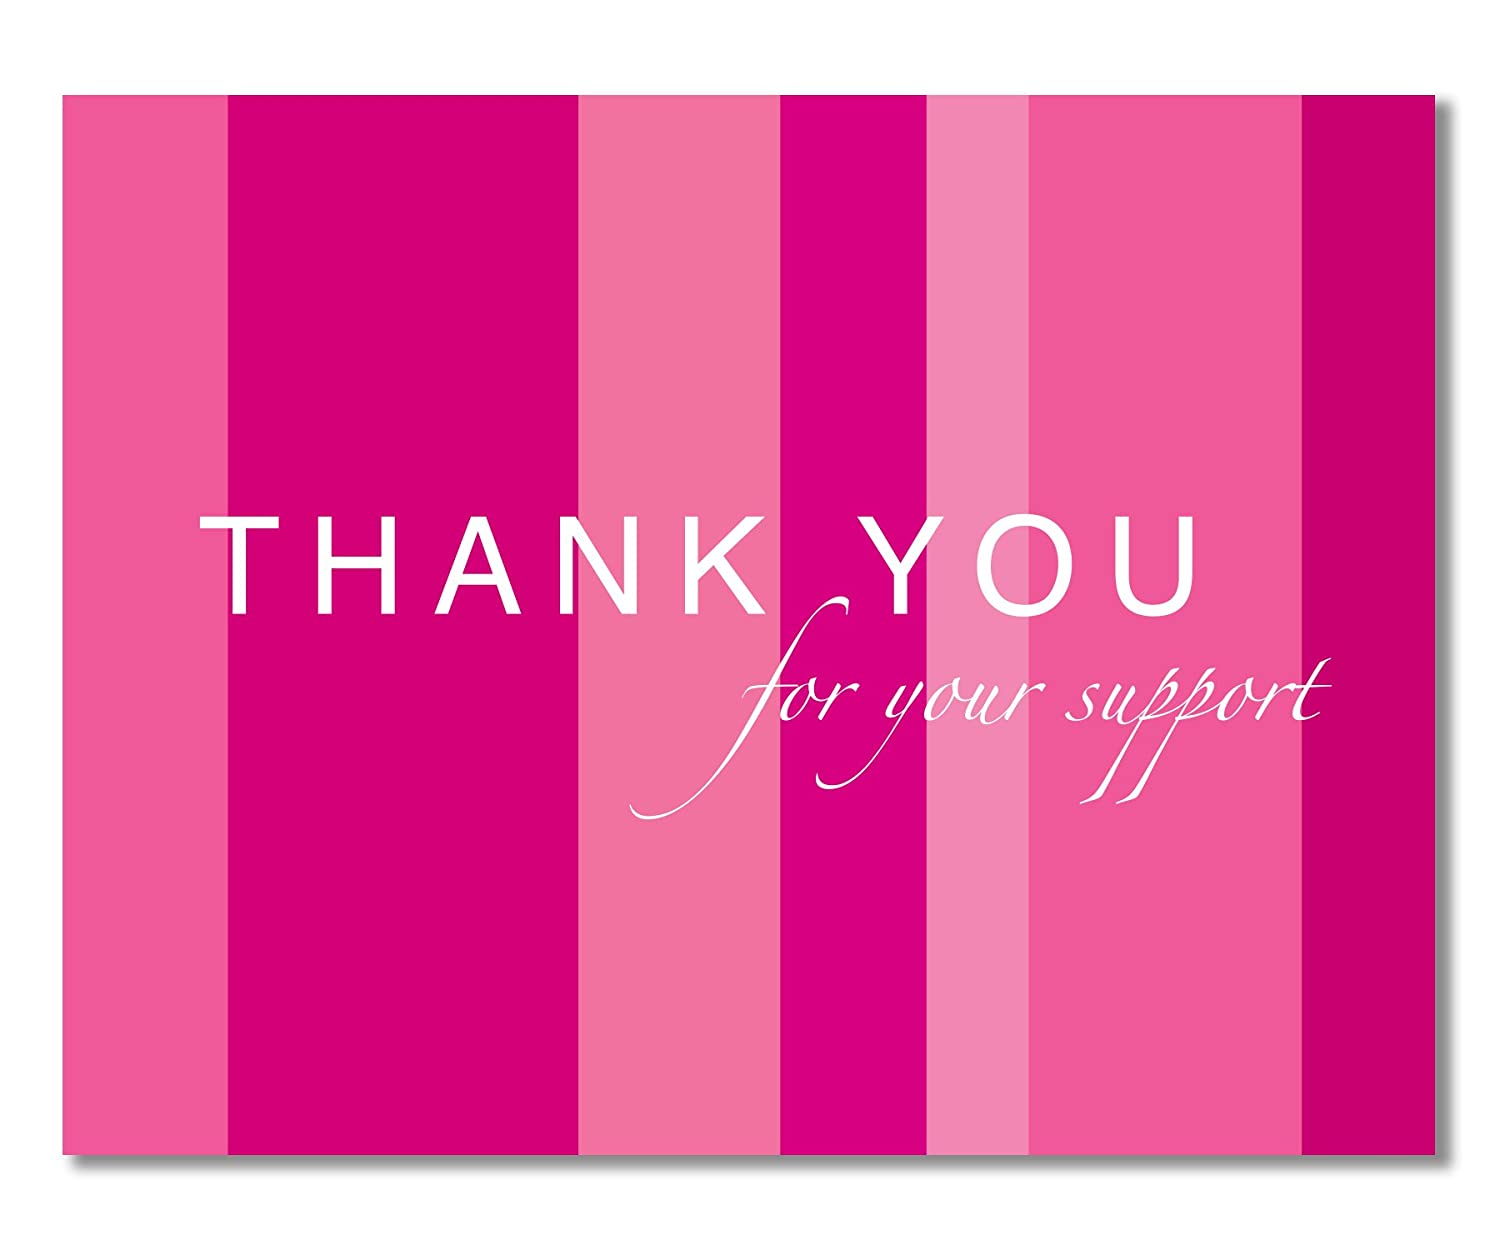 Amazon.com: 10 Breast Cancer Support, Pink Ribbon Thank You Cards, Recycled  - For Breast Cancer Awareness, Charity Events, Runs, Walks - Hot Pink -  Jenna by ...